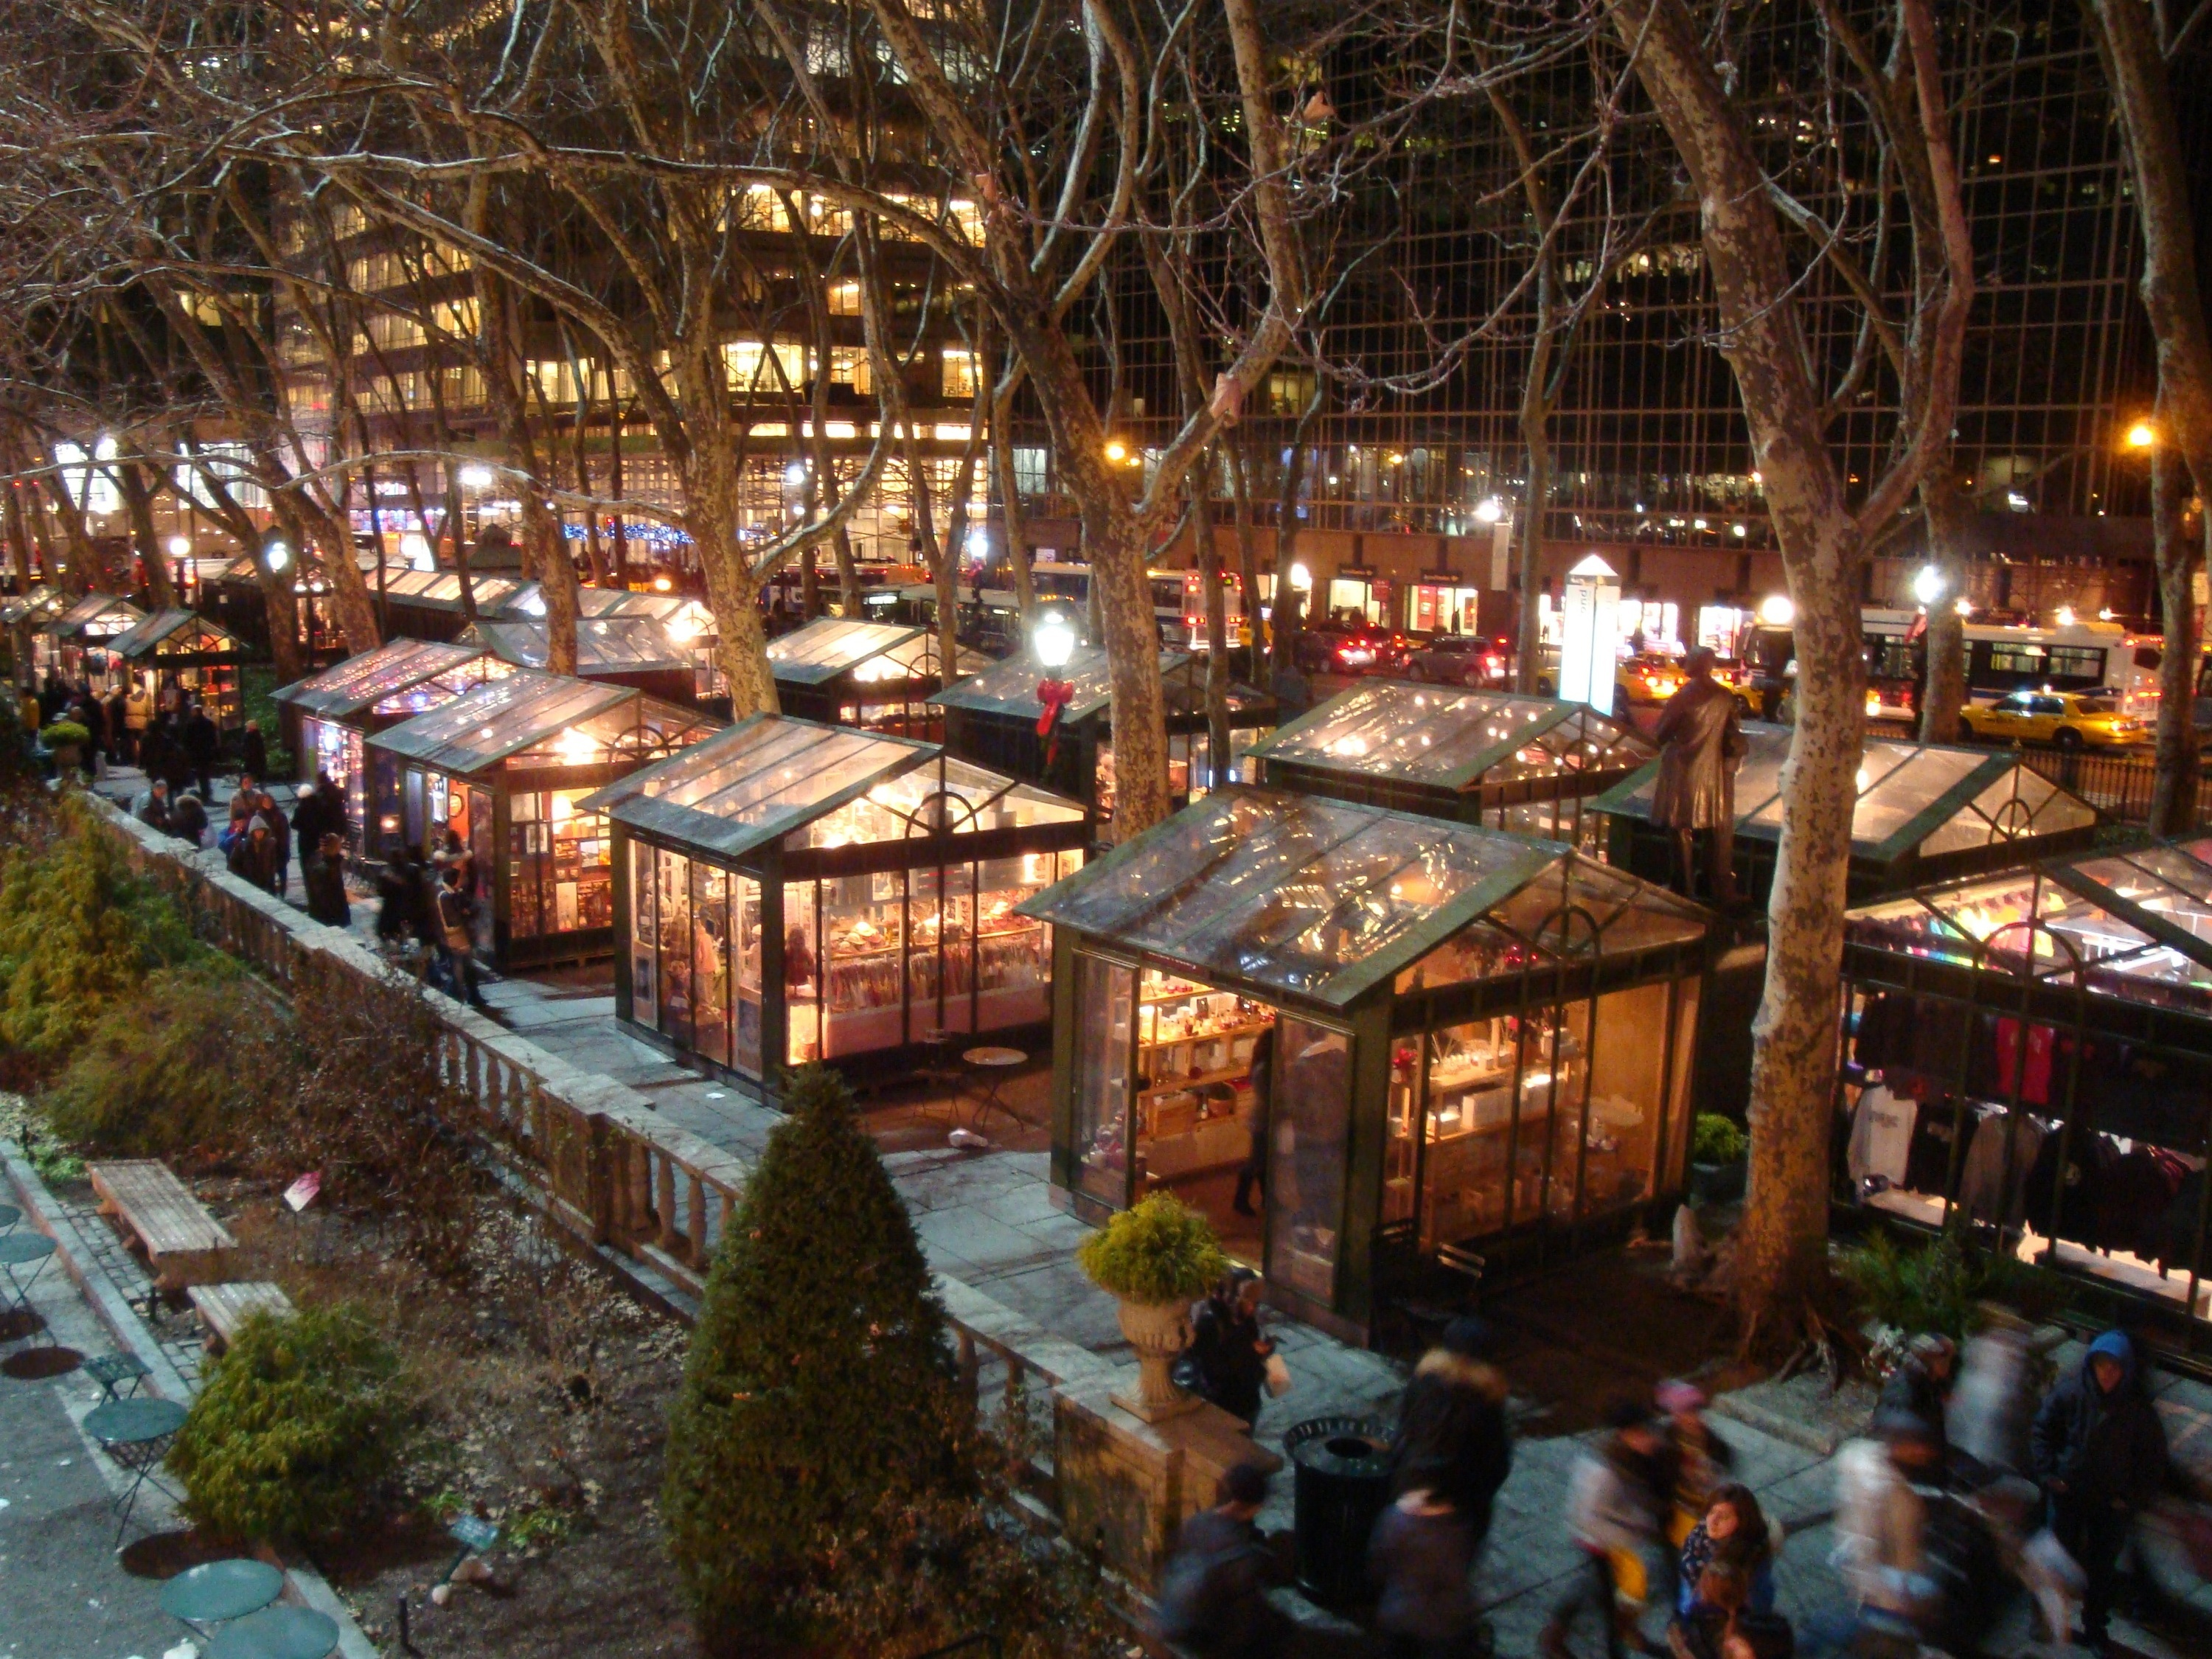 Bryant park winter village guide to the best holiday market for Things to do in nyc evening